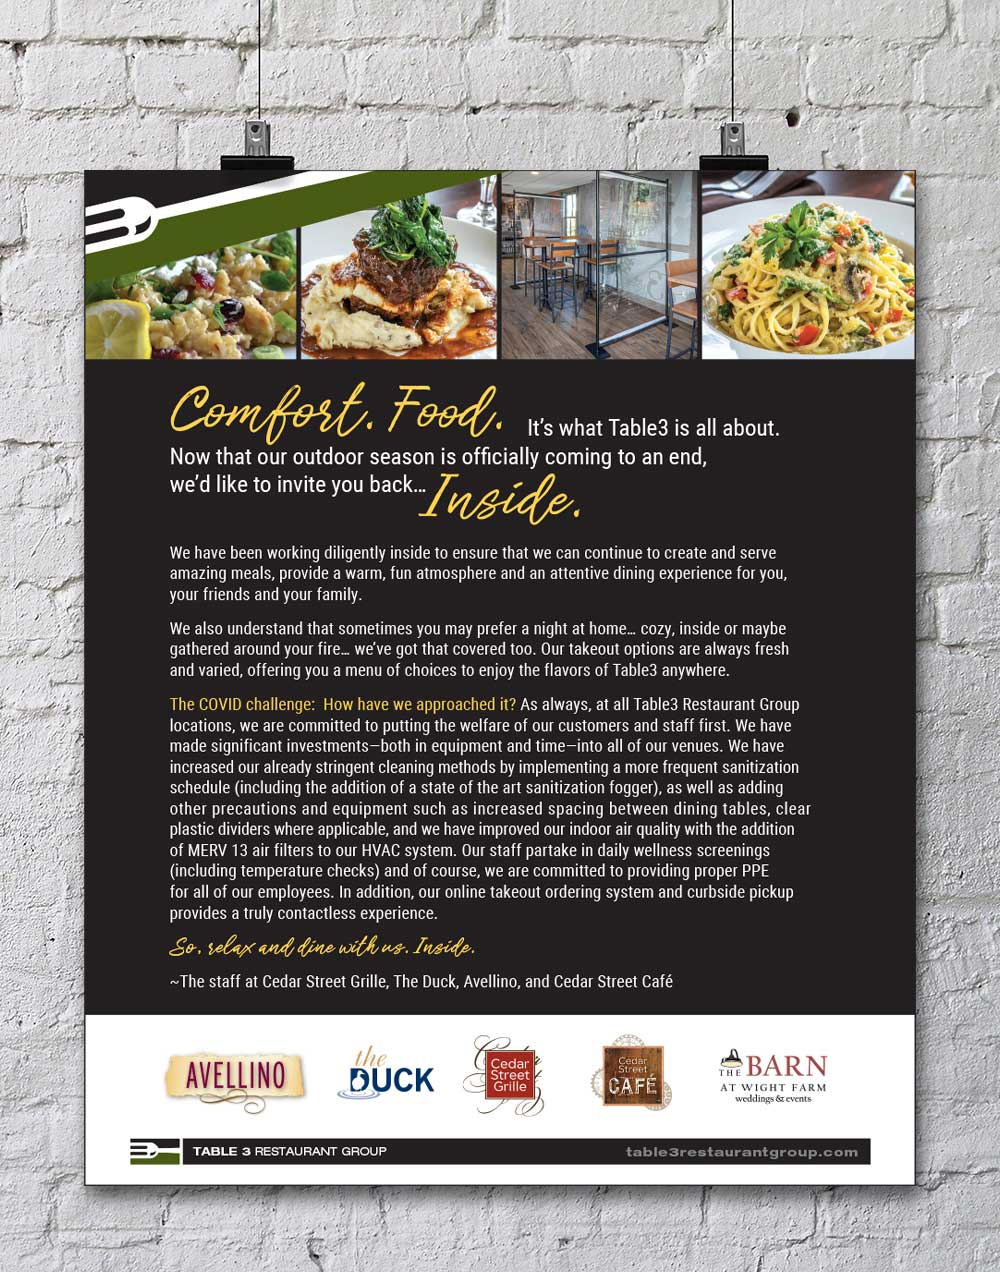 Print ad design for Table 3 Restaurant Group